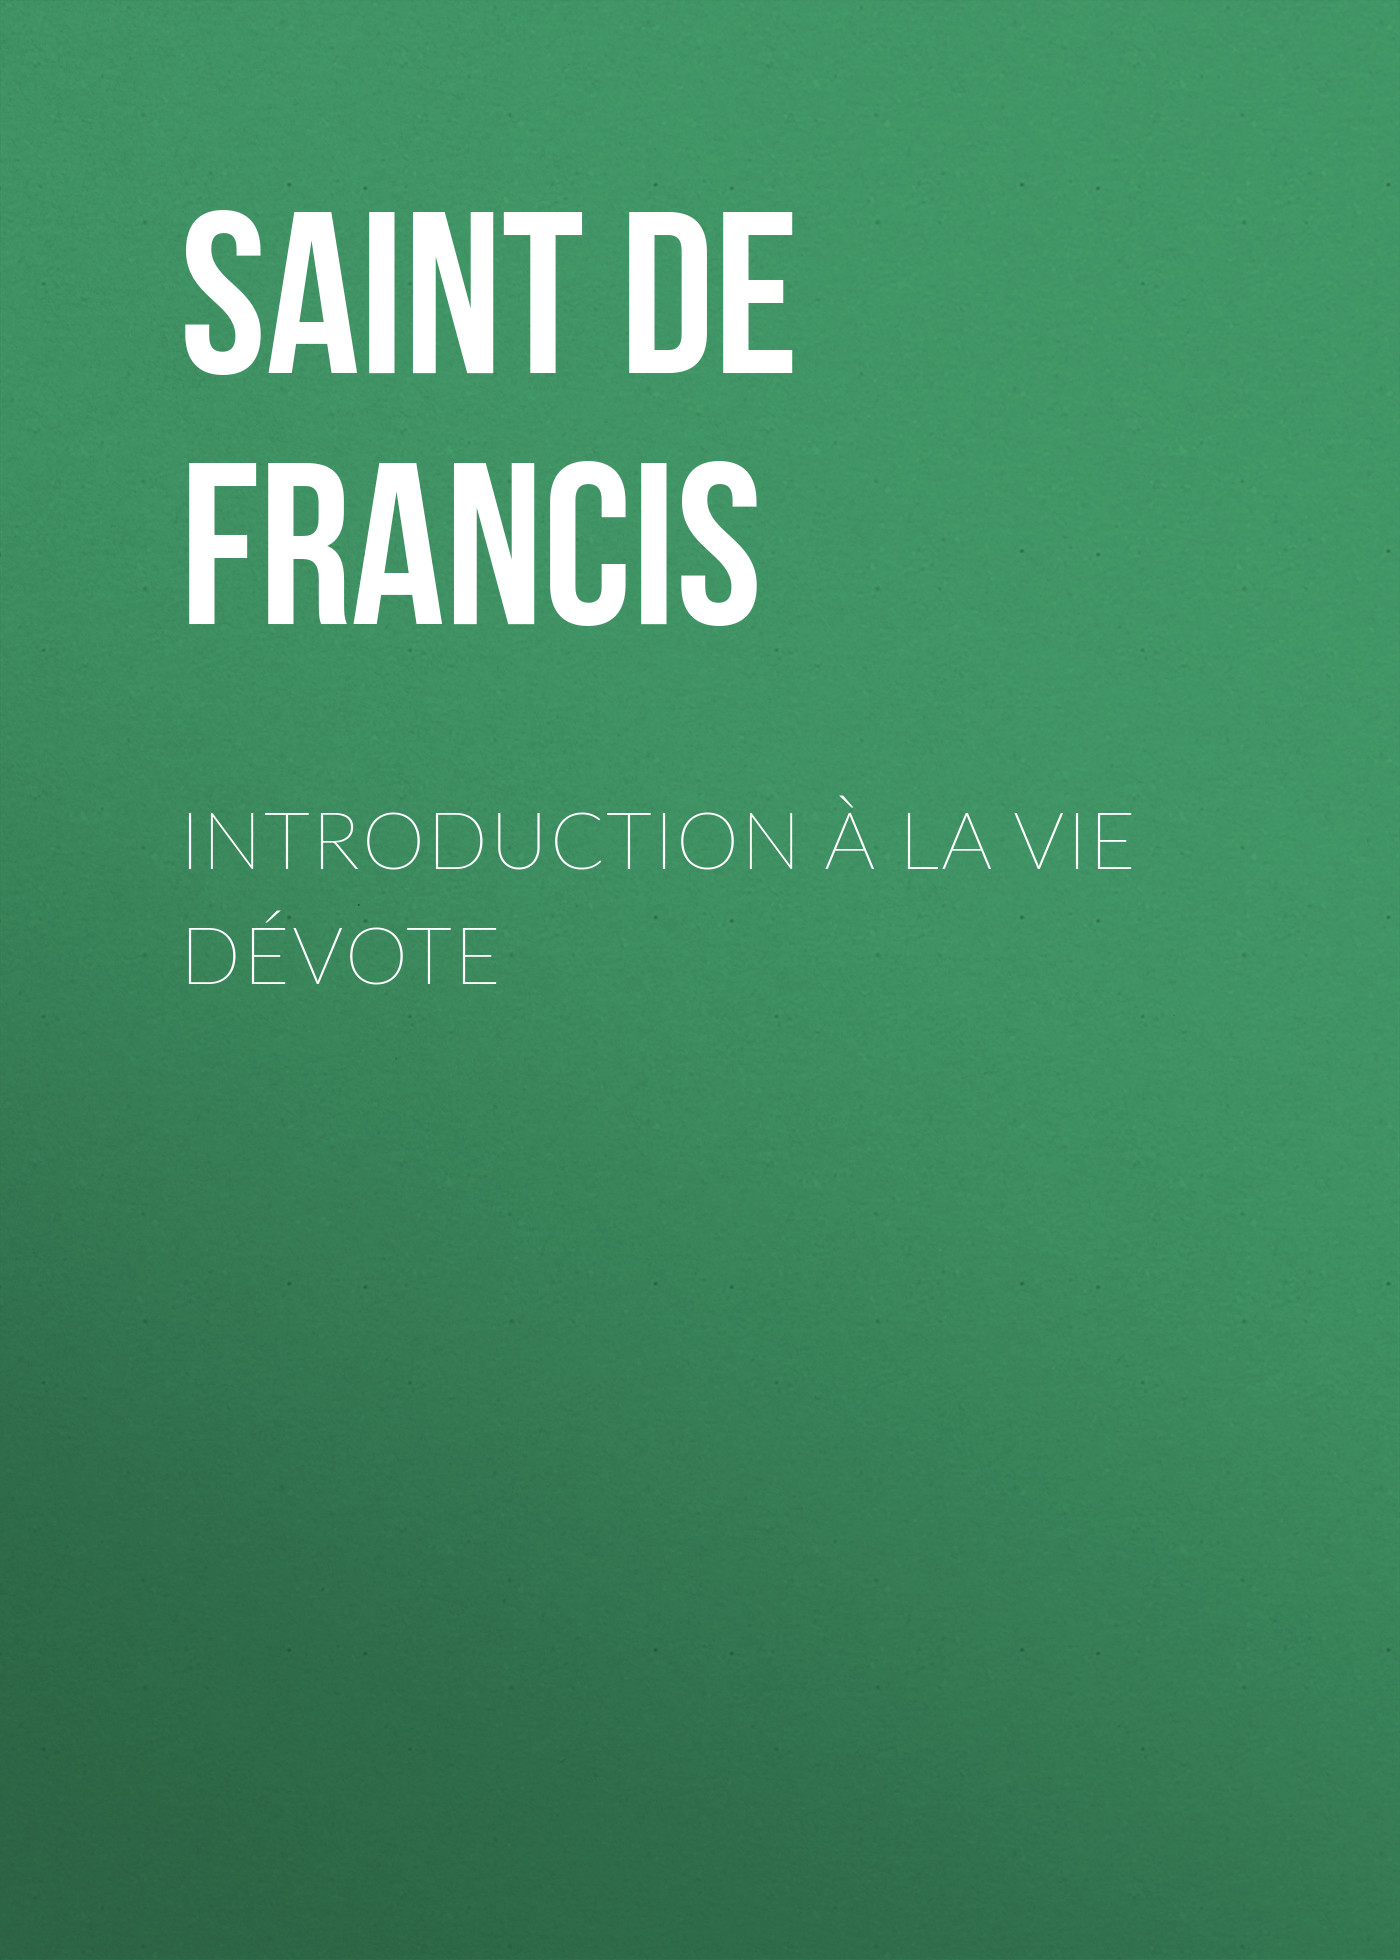 лучшая цена Saint de Sales Francis Introduction à la vie dévote